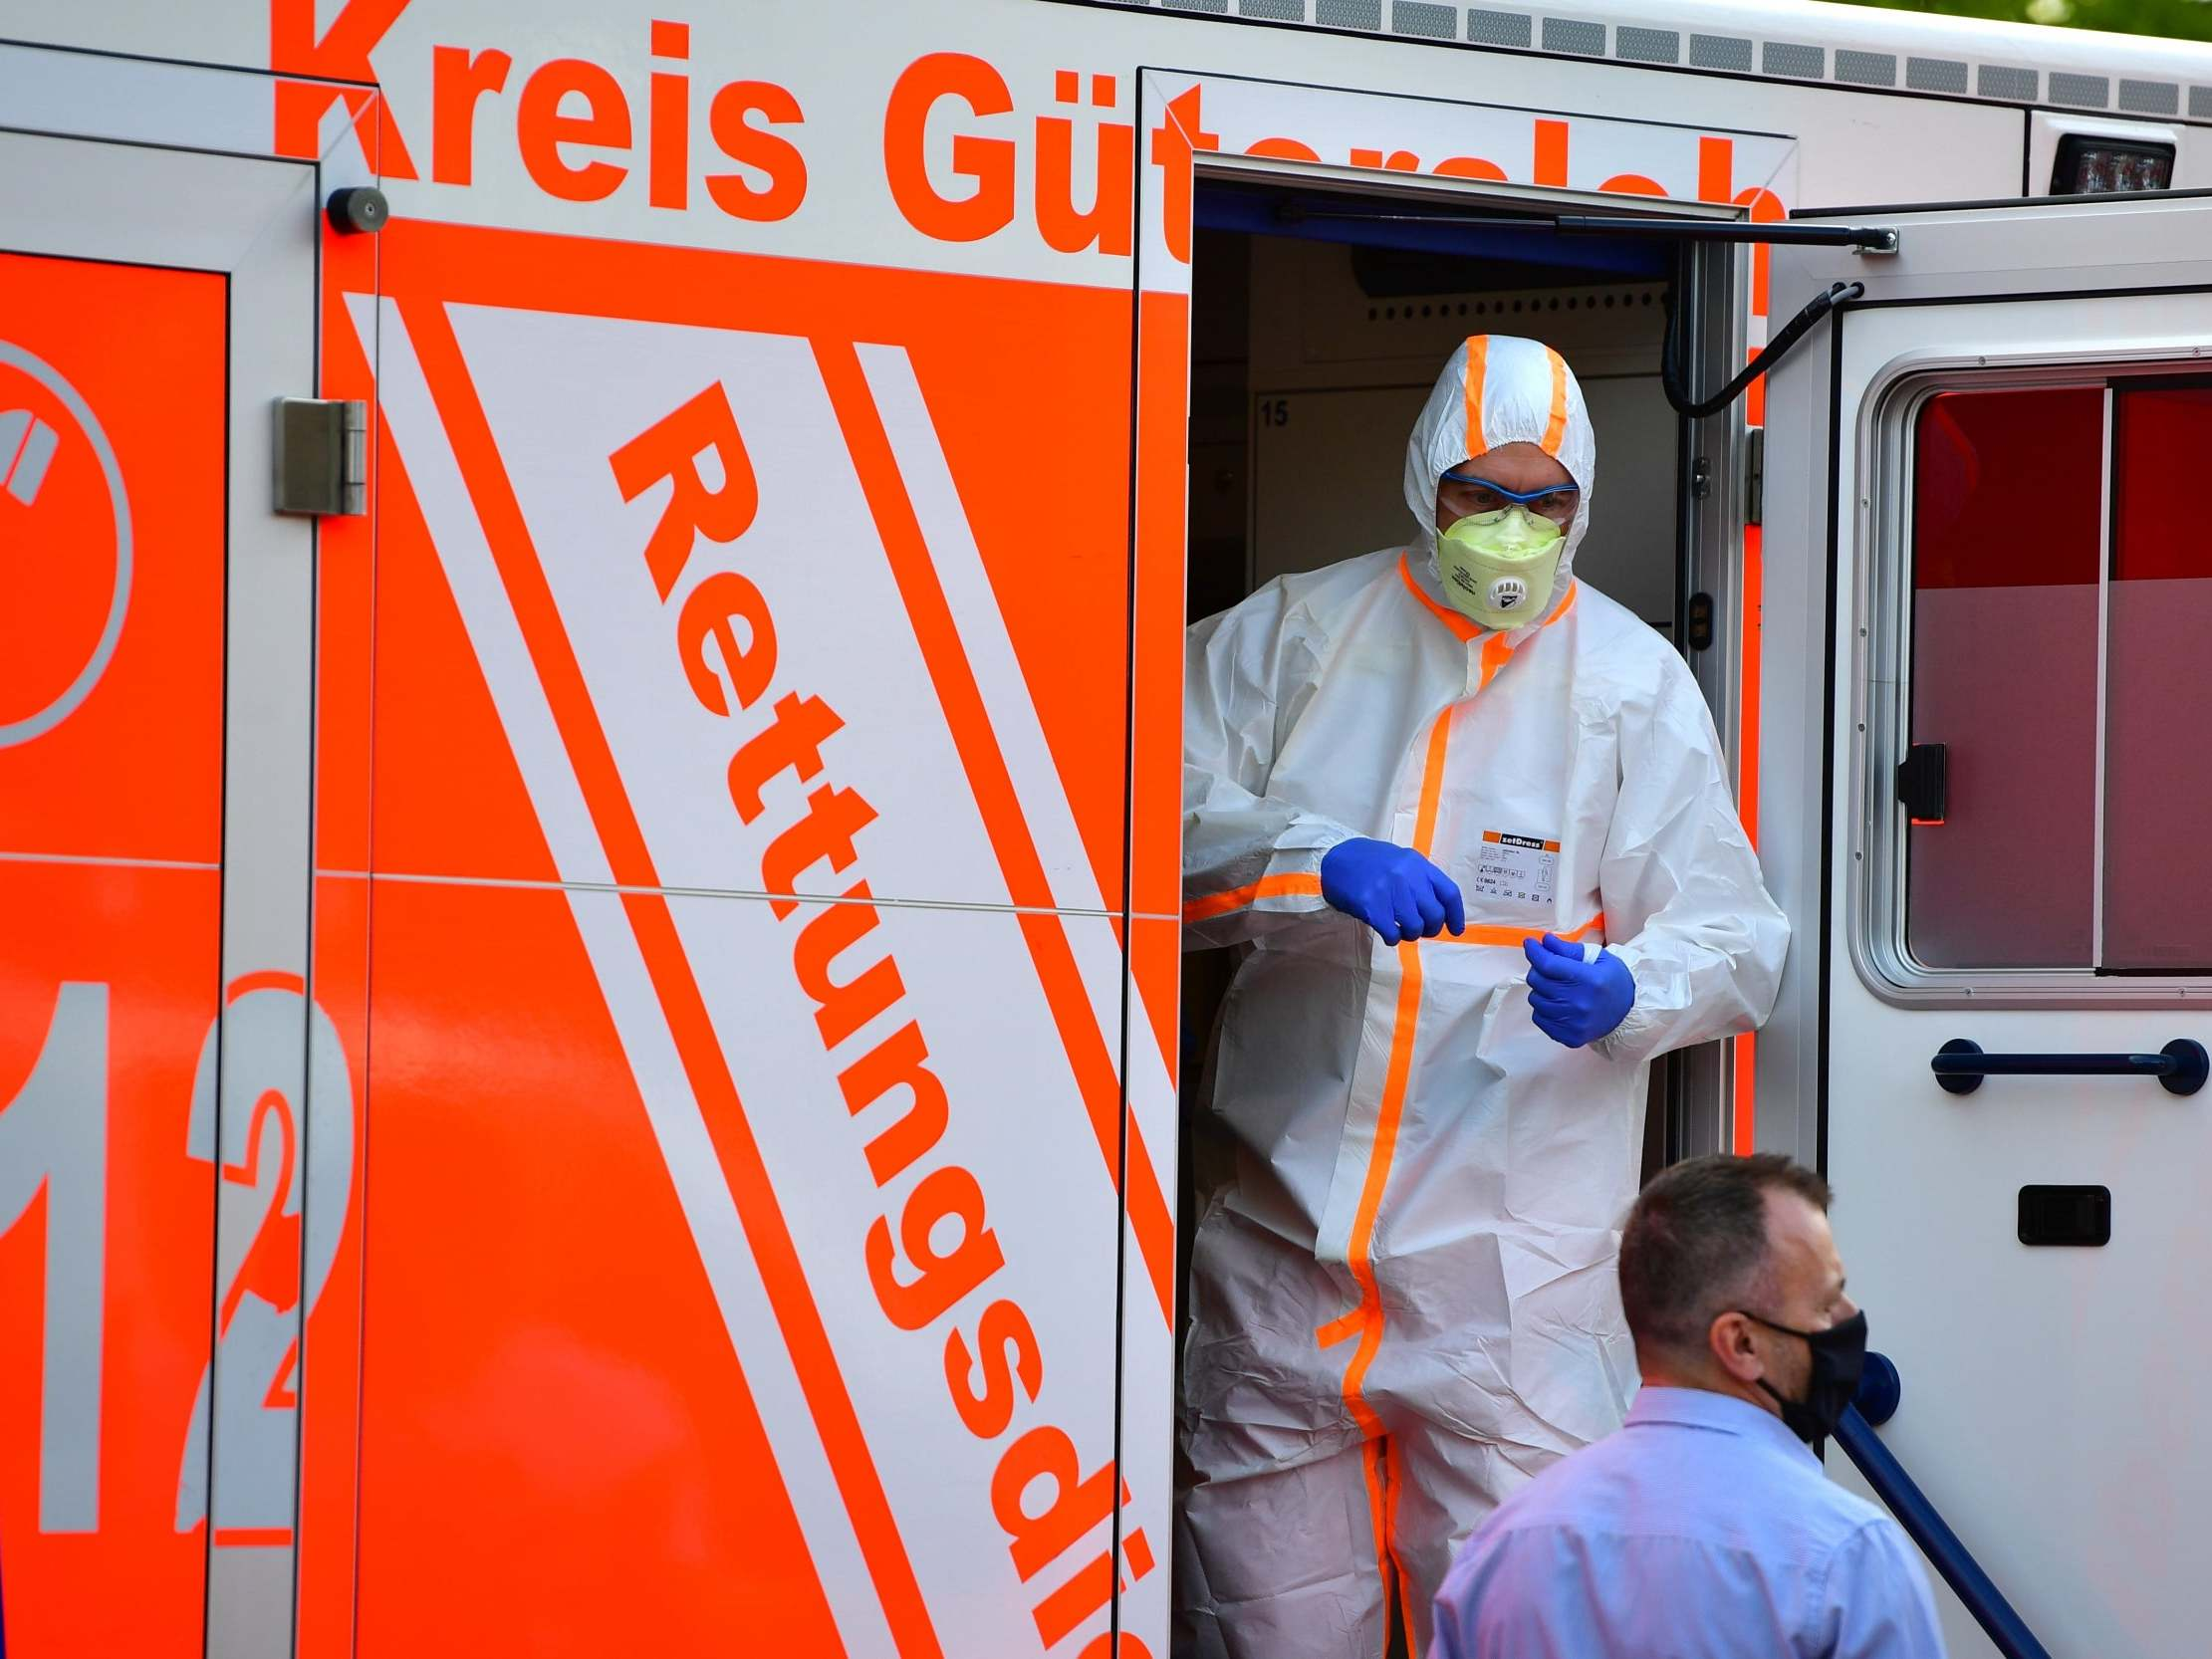 Fears of second coronavirus wave in Germany as 'R' rate jumps to 1.79